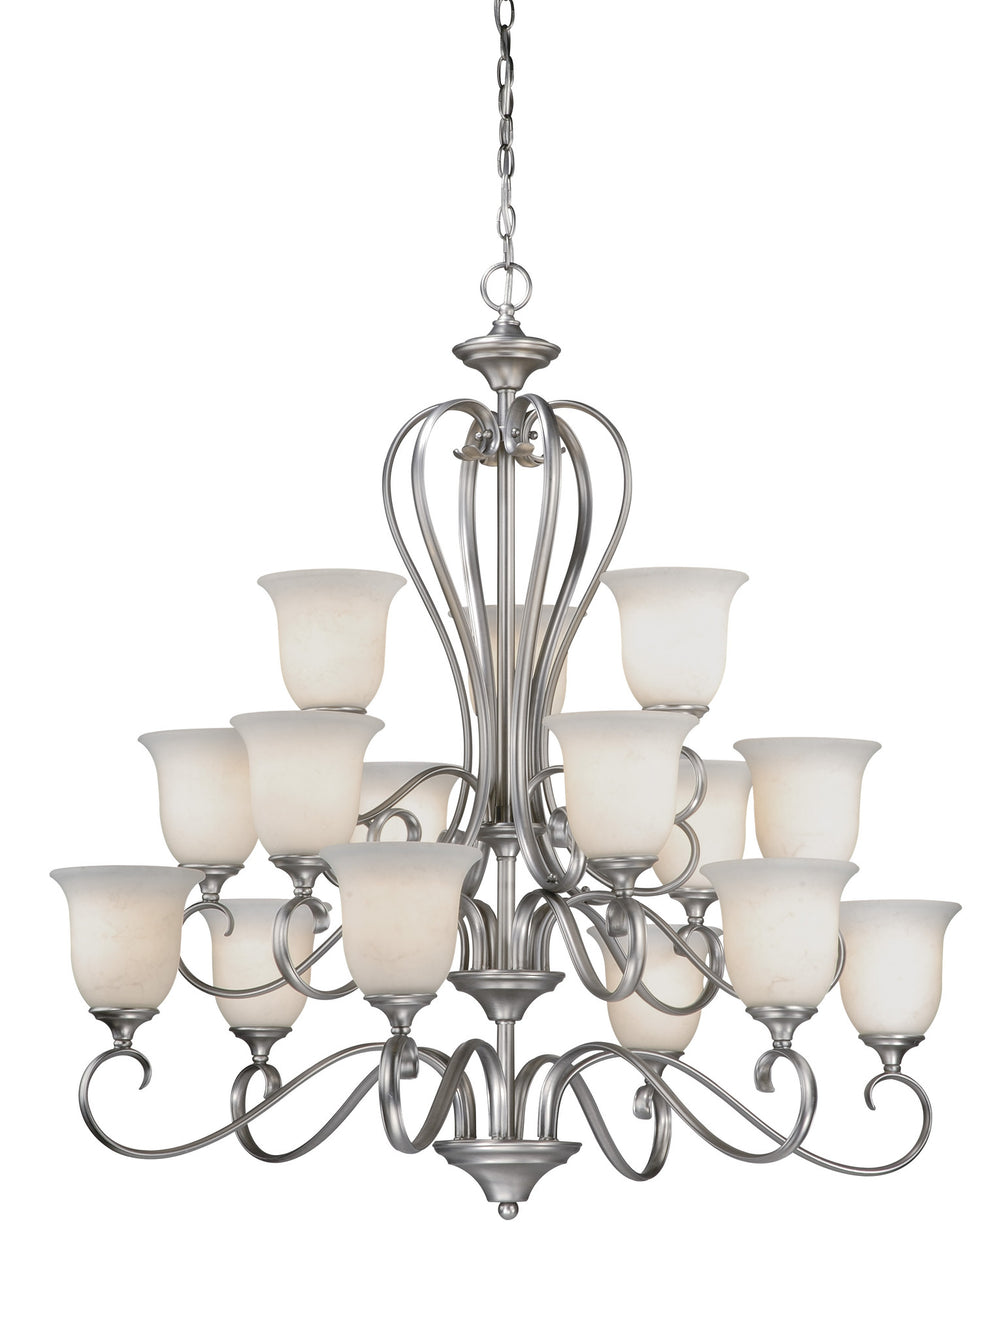 Buy RV-CHU015AP Vaxcel Riviera 15L Chandelier Antique Pewter from LightingOriginals.ca